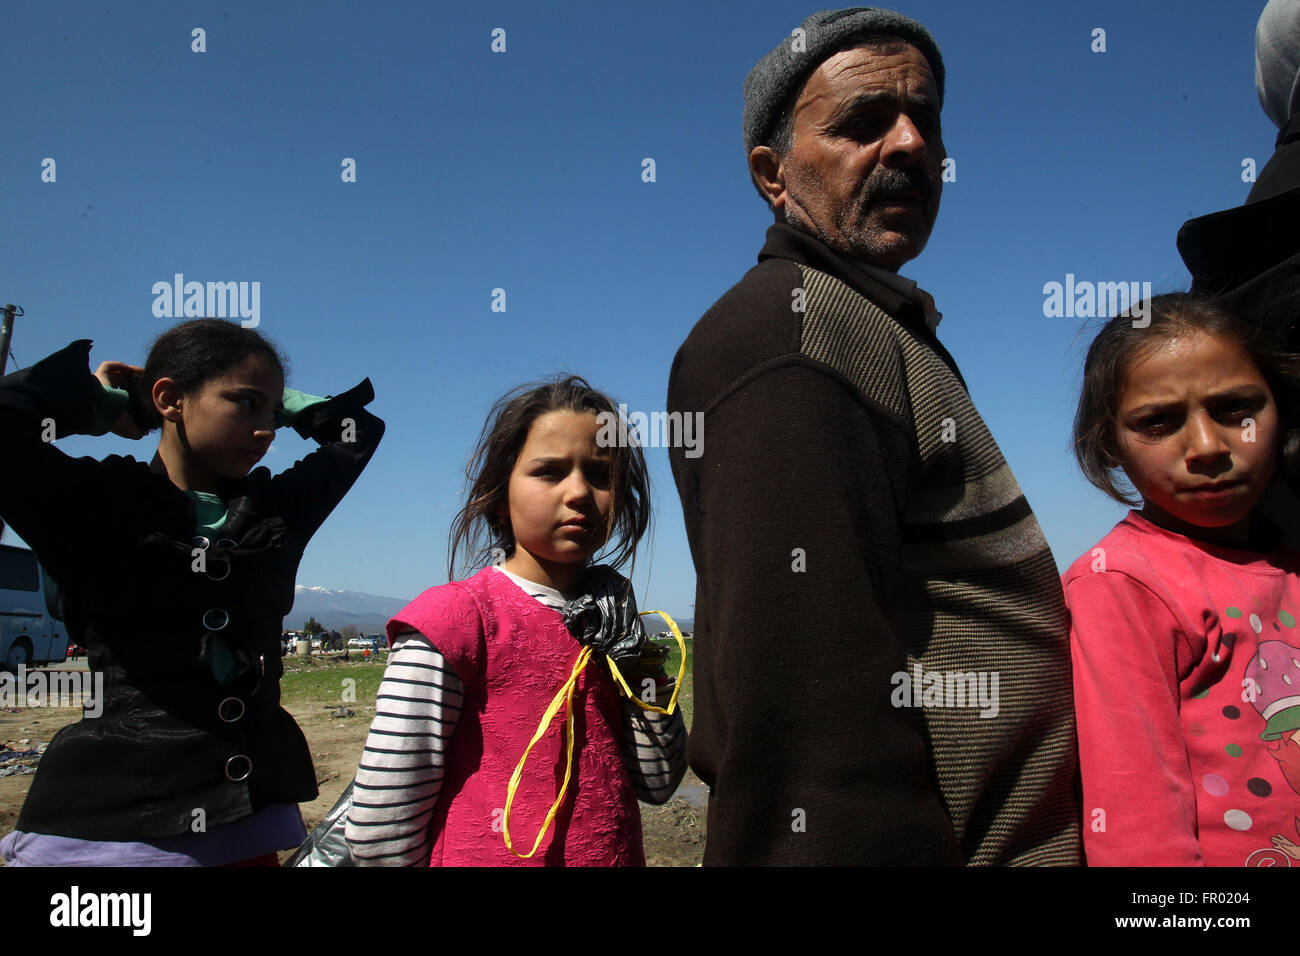 Idomeni. 20th Mar, 2016. Refugees and migrants are seen at the borderline between Greece and the Former Yugoslav - Stock Image